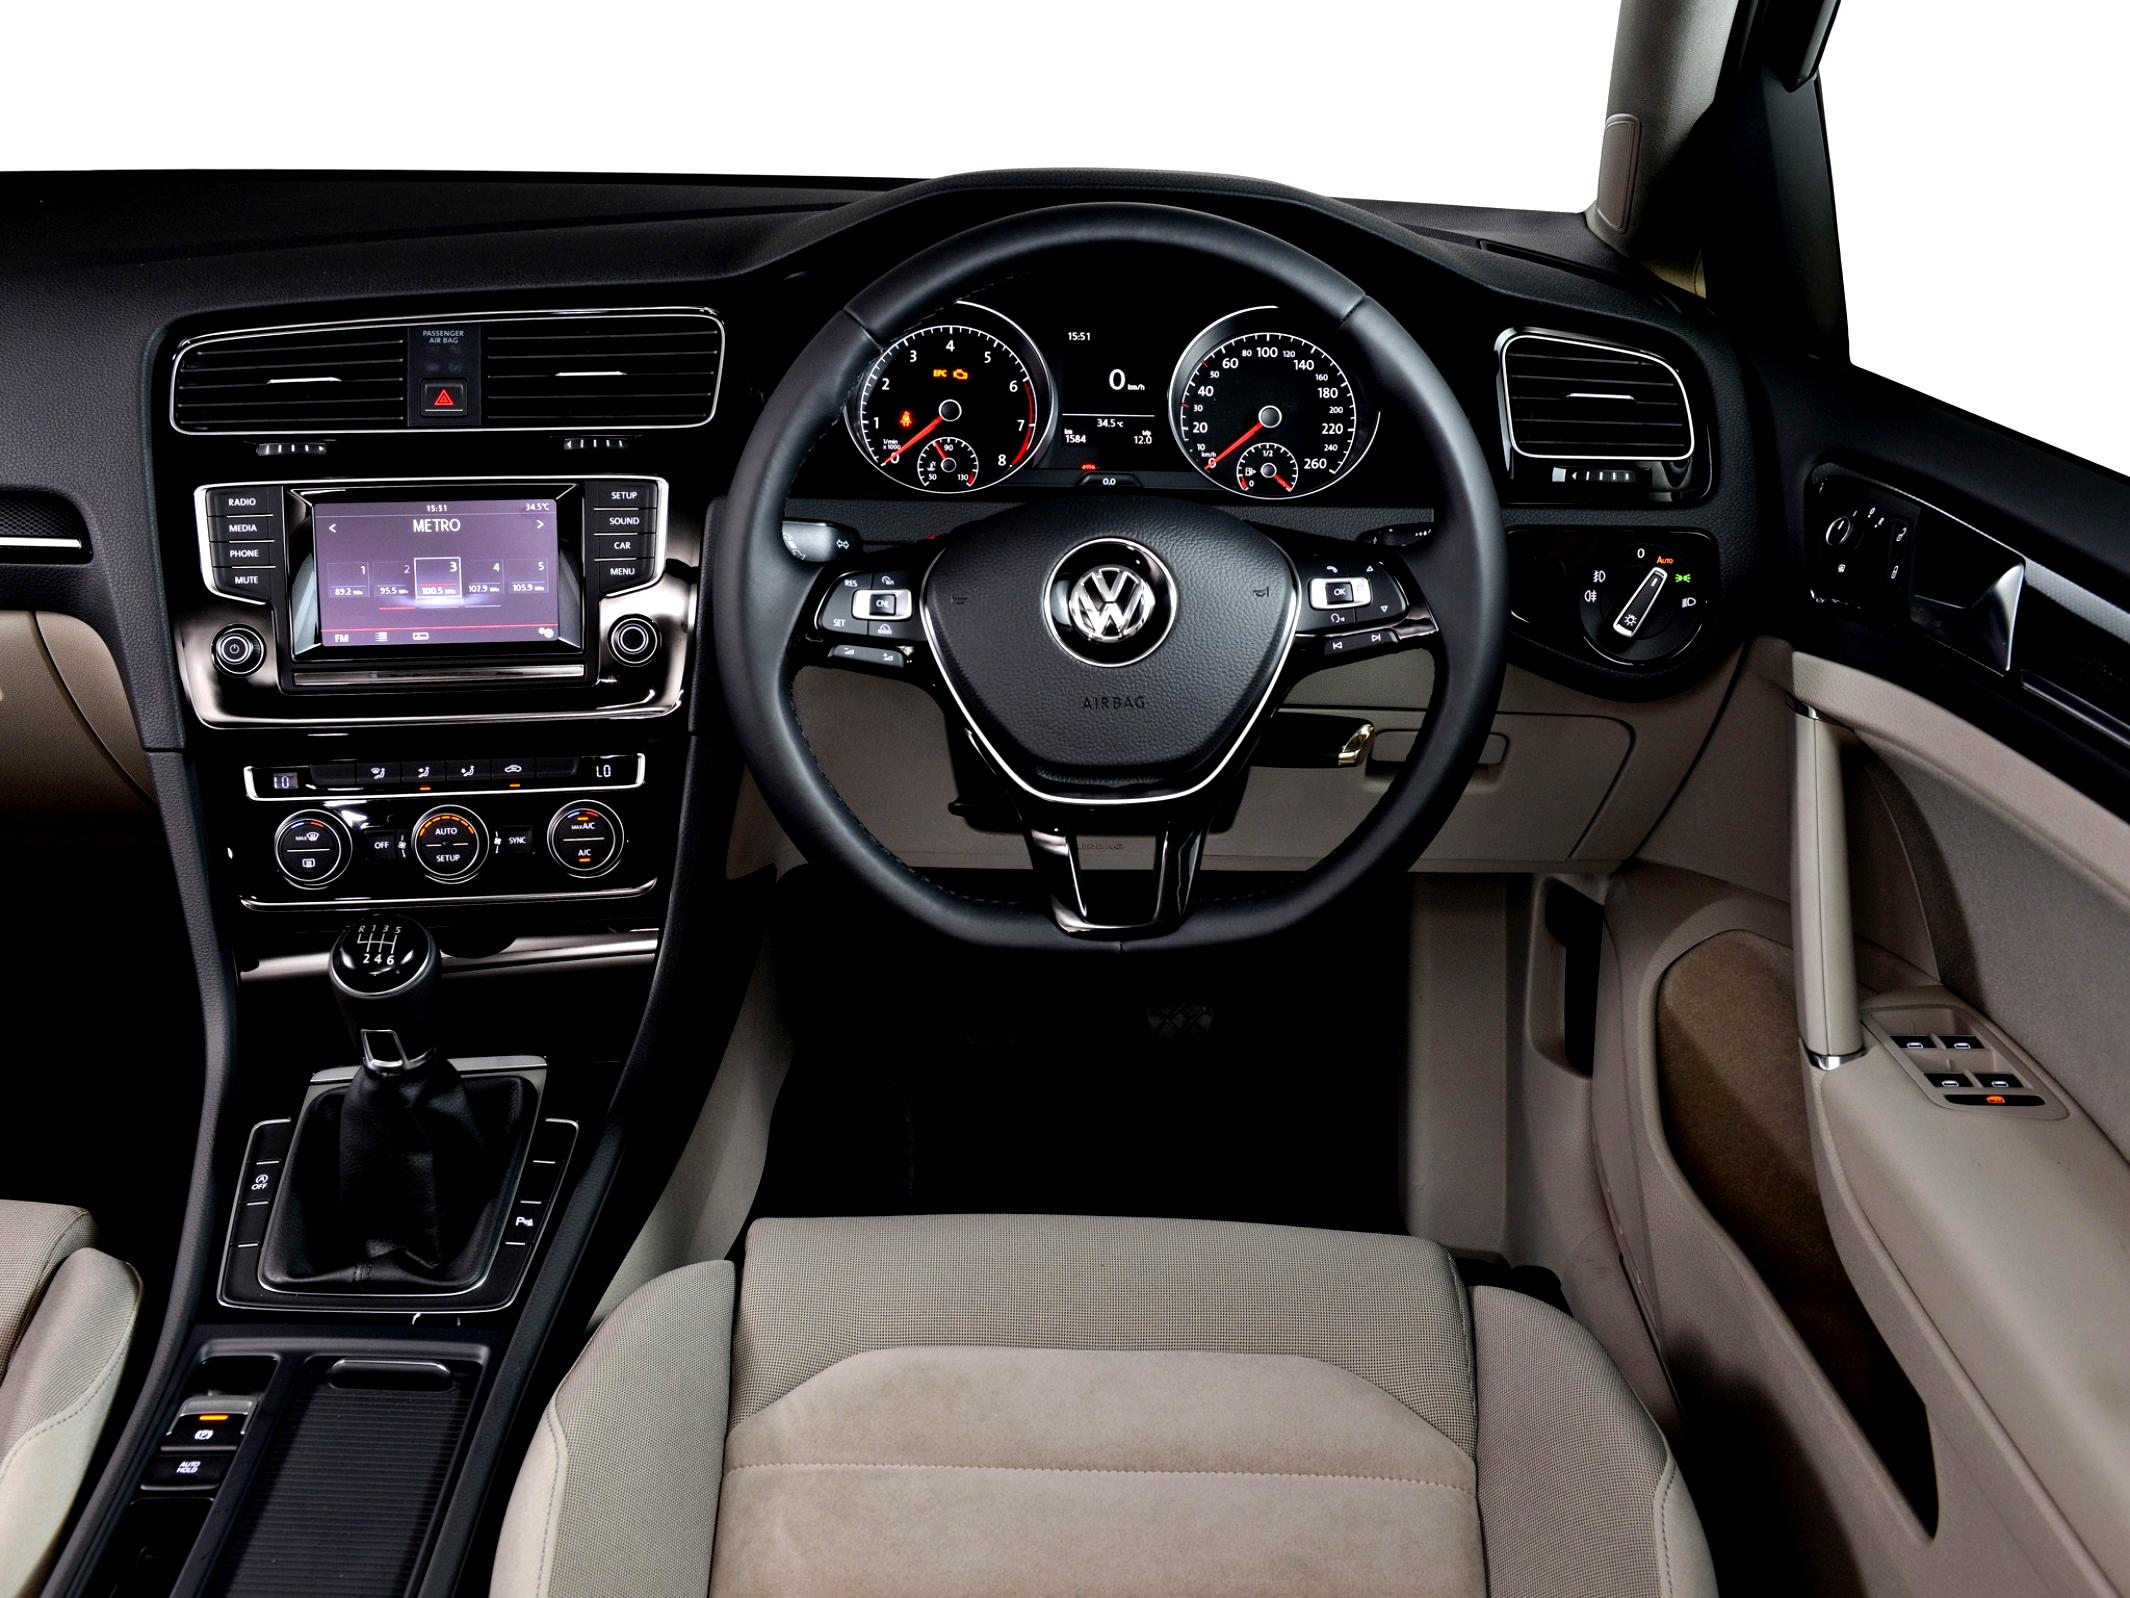 Volkswagen Golf VII 5 Doors 2012 #96